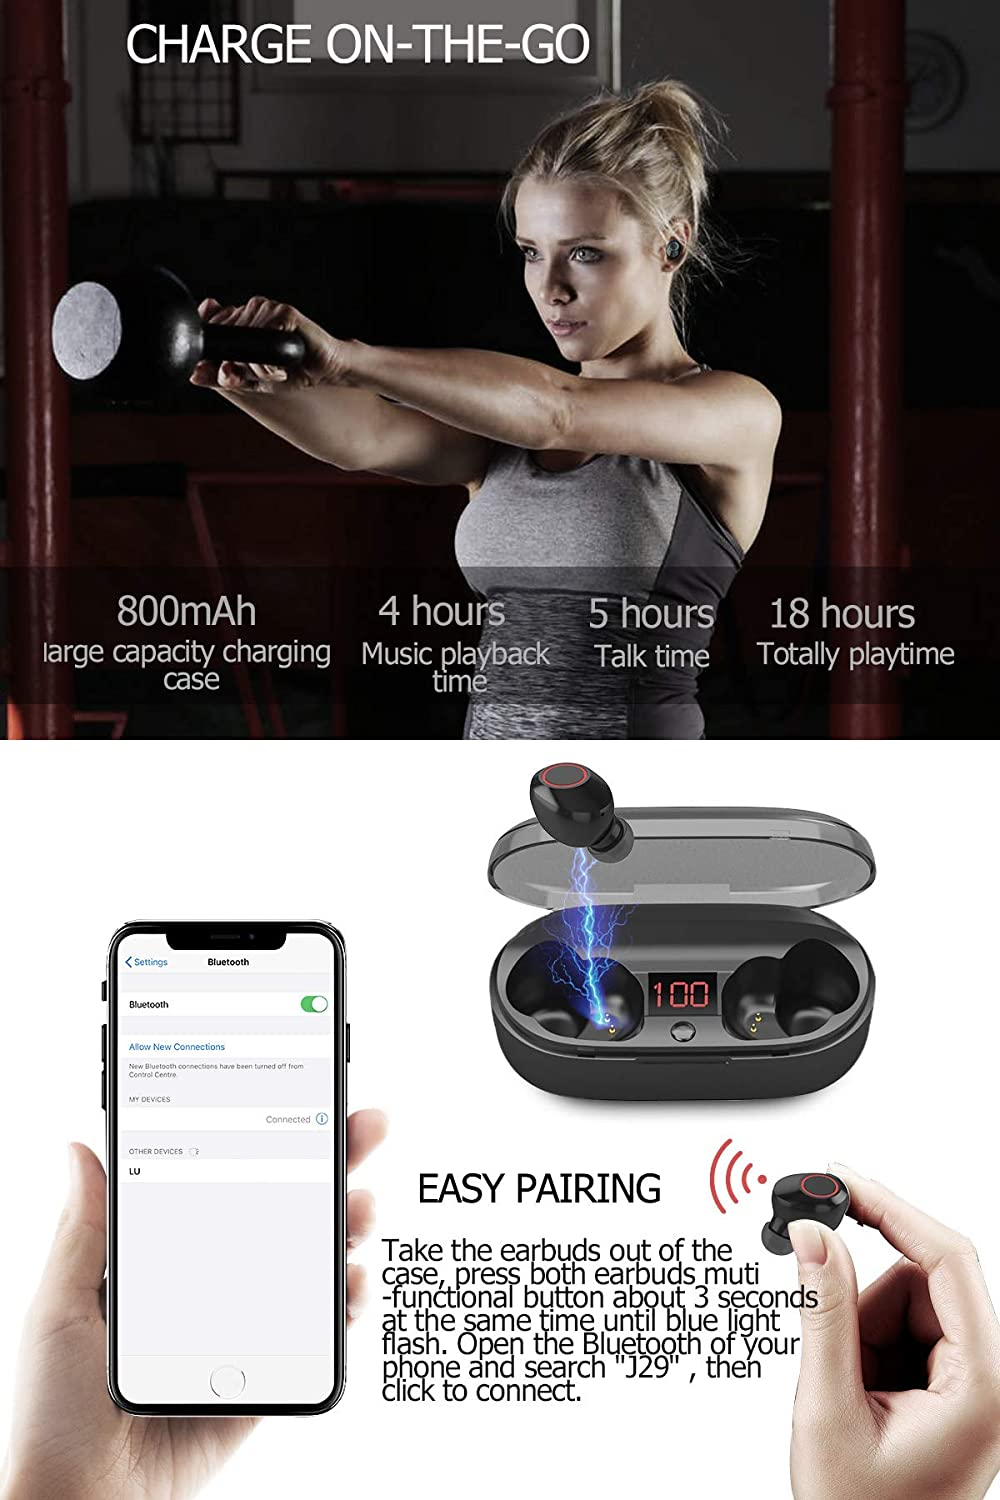 Wireless Bluetooth Earbuds 5.0 LCD Display, True Wireless Earphones Bluetooth Waterproof Stereo Earbuds with Microphone, Wireless Headphones Noise Cancelling with Charging Case for iPhone Android